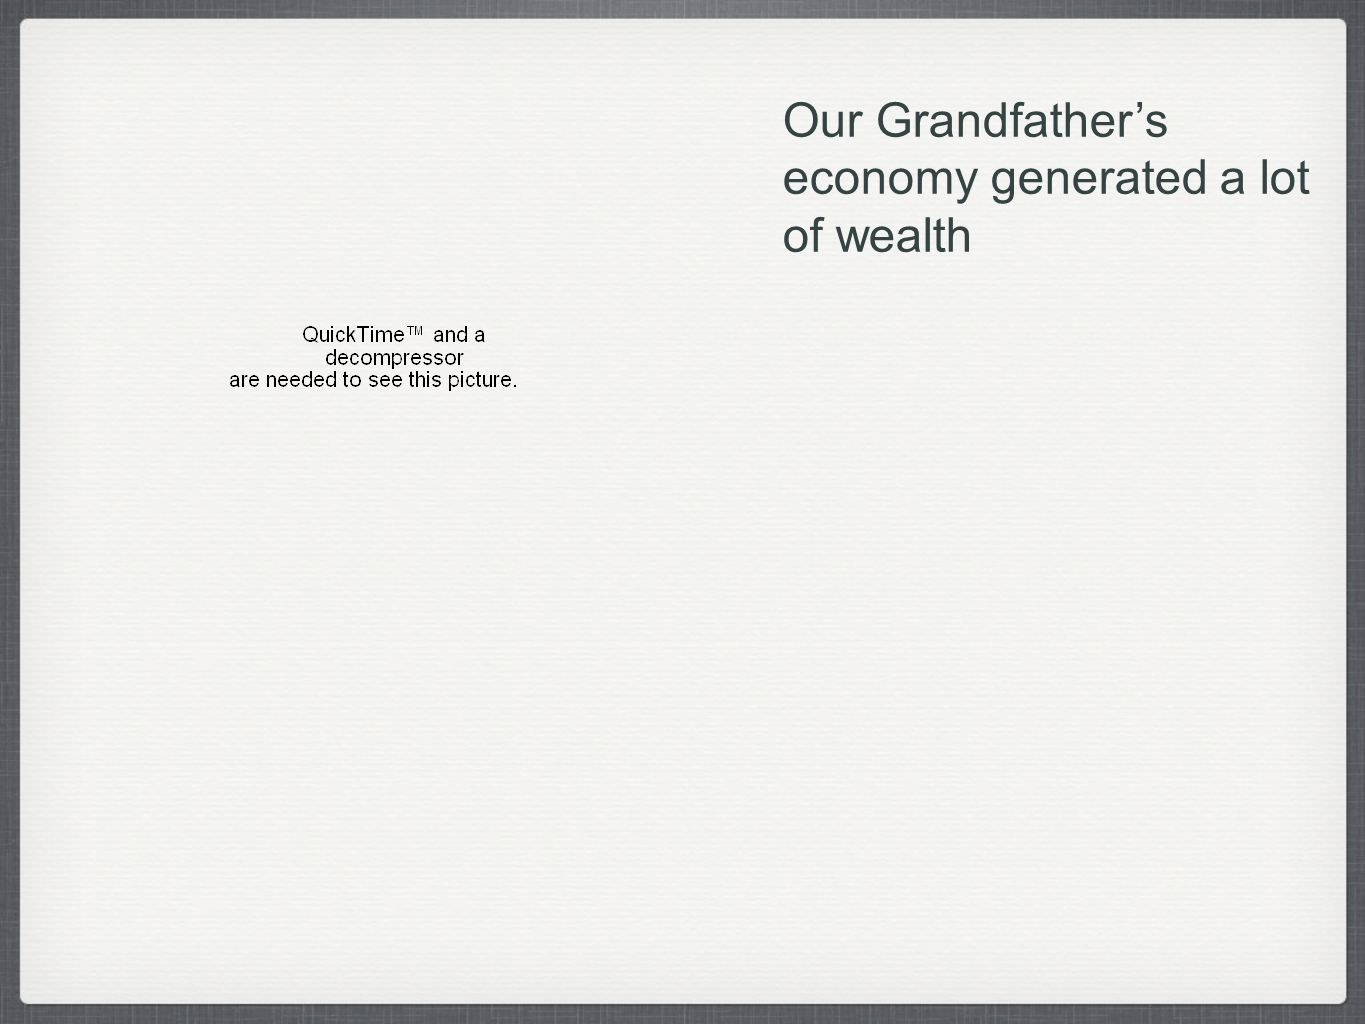 Our Grandfathers economy generated a lot of wealth